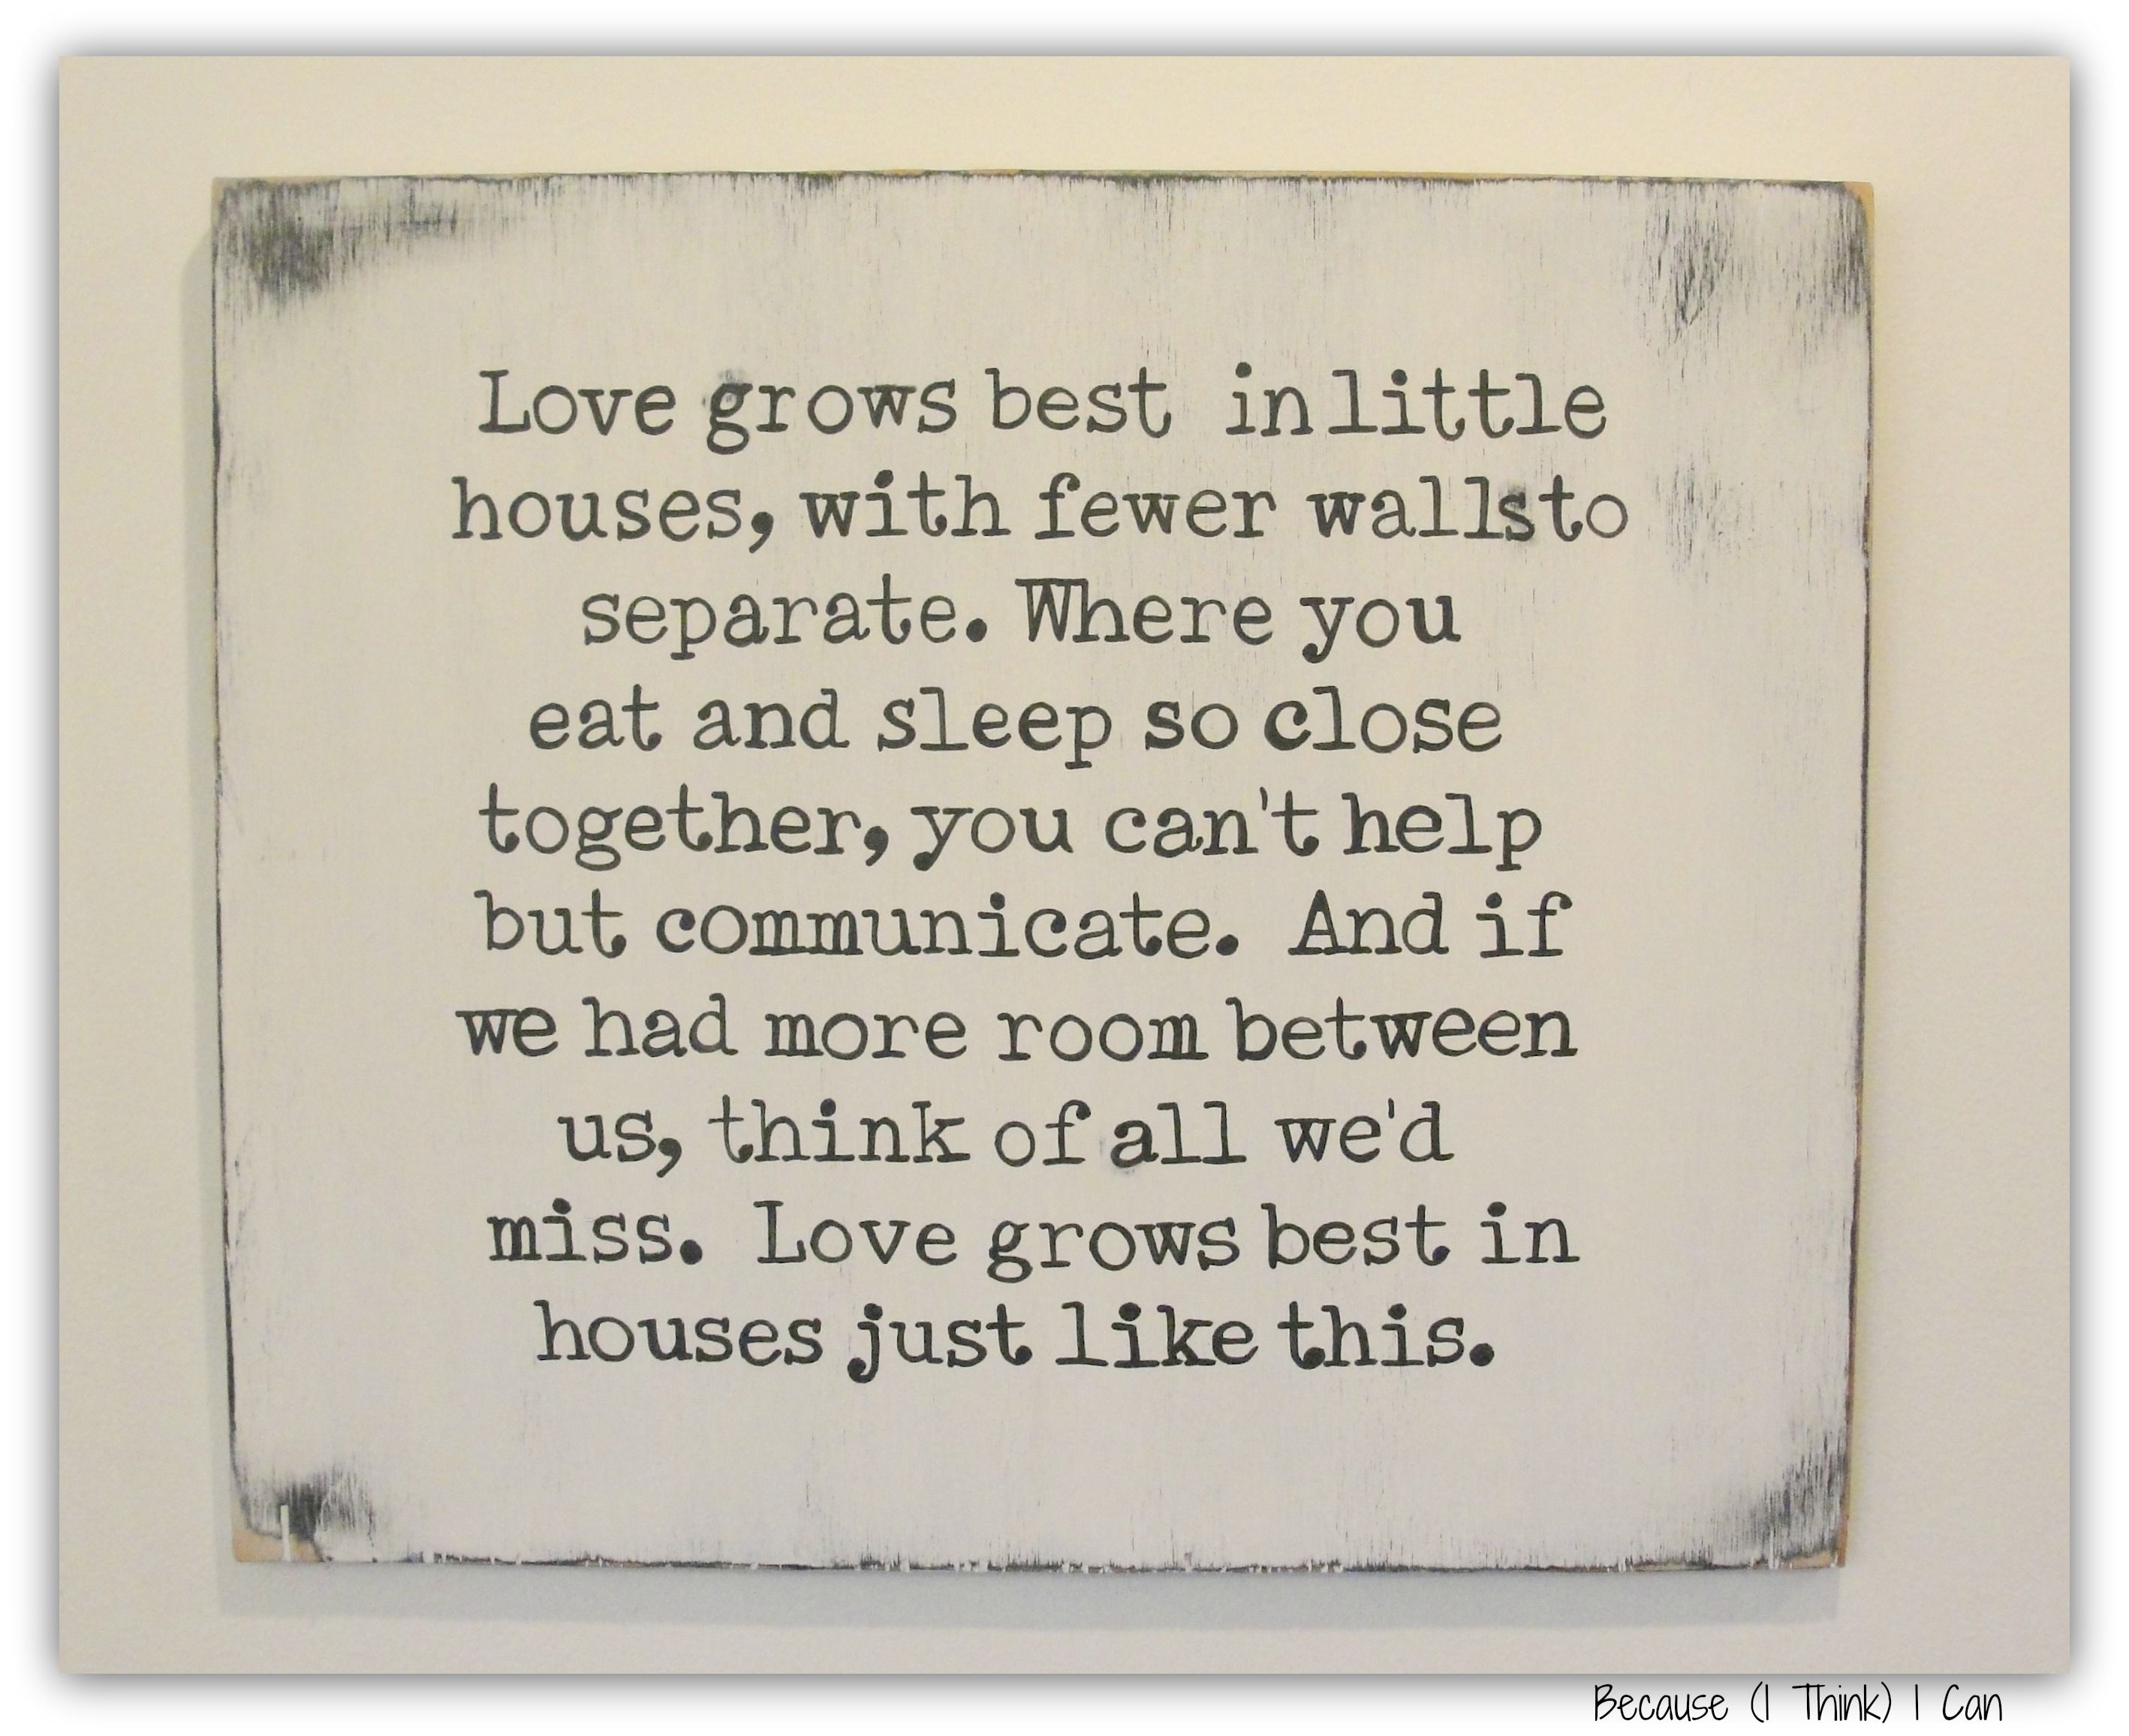 Quotes About Houses Love Grows Best In Little Houses   Tiny House  Pinterest